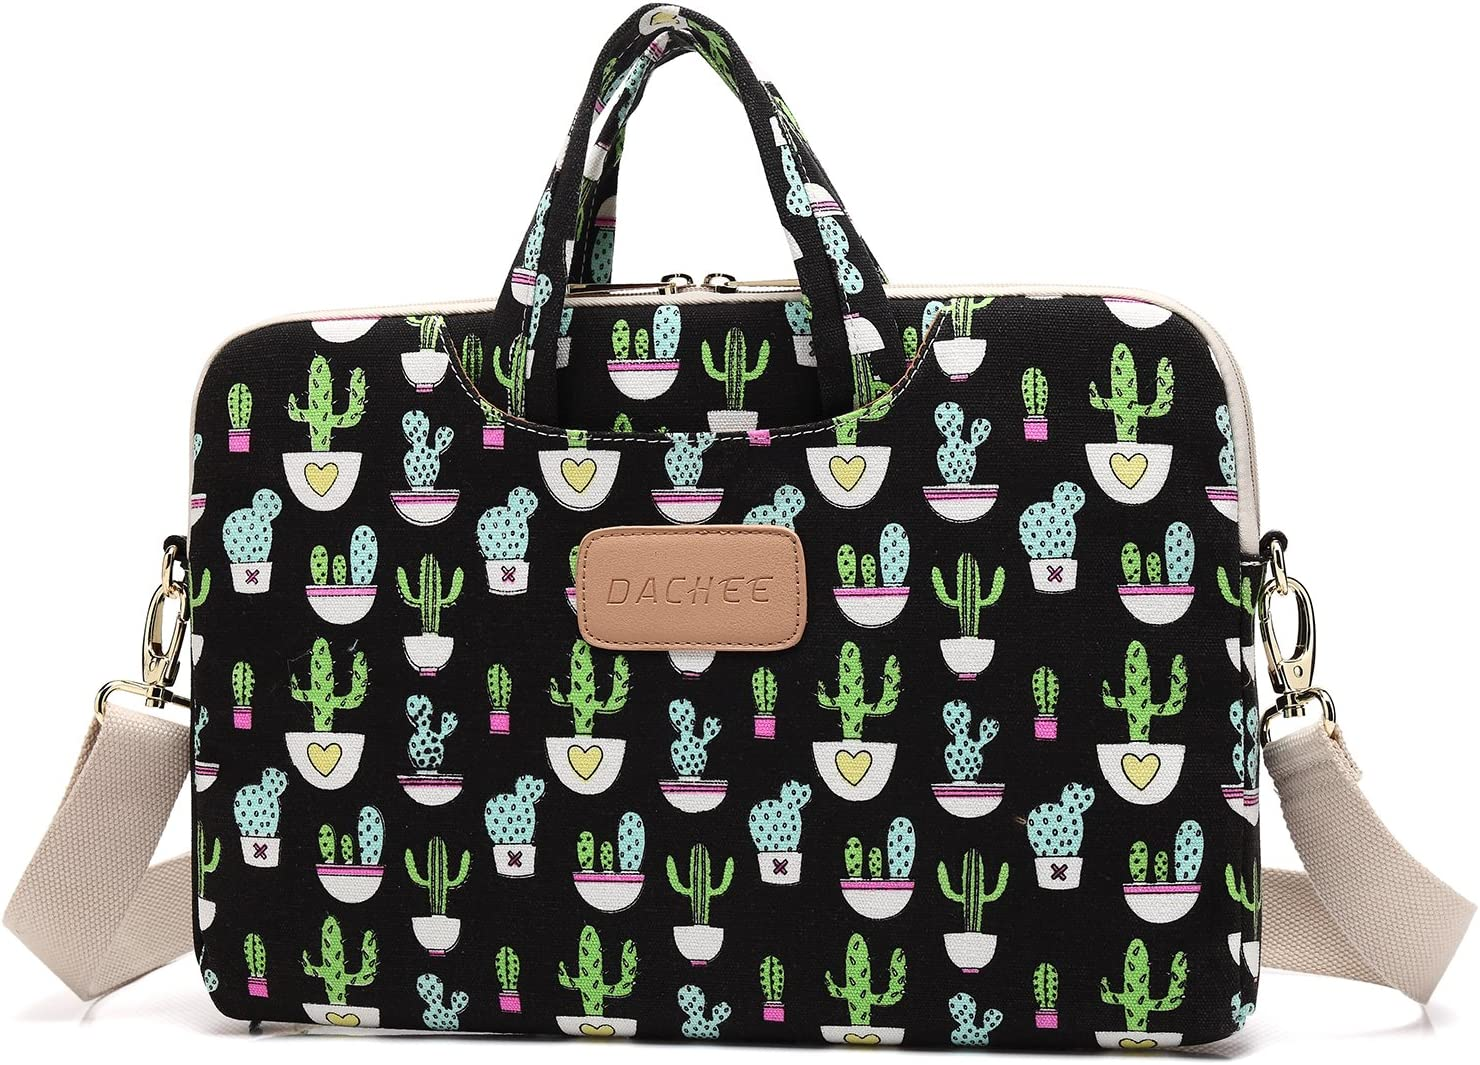 DACHEE Black Cactus Patten Canvas Laptop Shoulder Messenger Bag Case Sleeve for 11 Inch 12 Inch 13 Inch Laptop